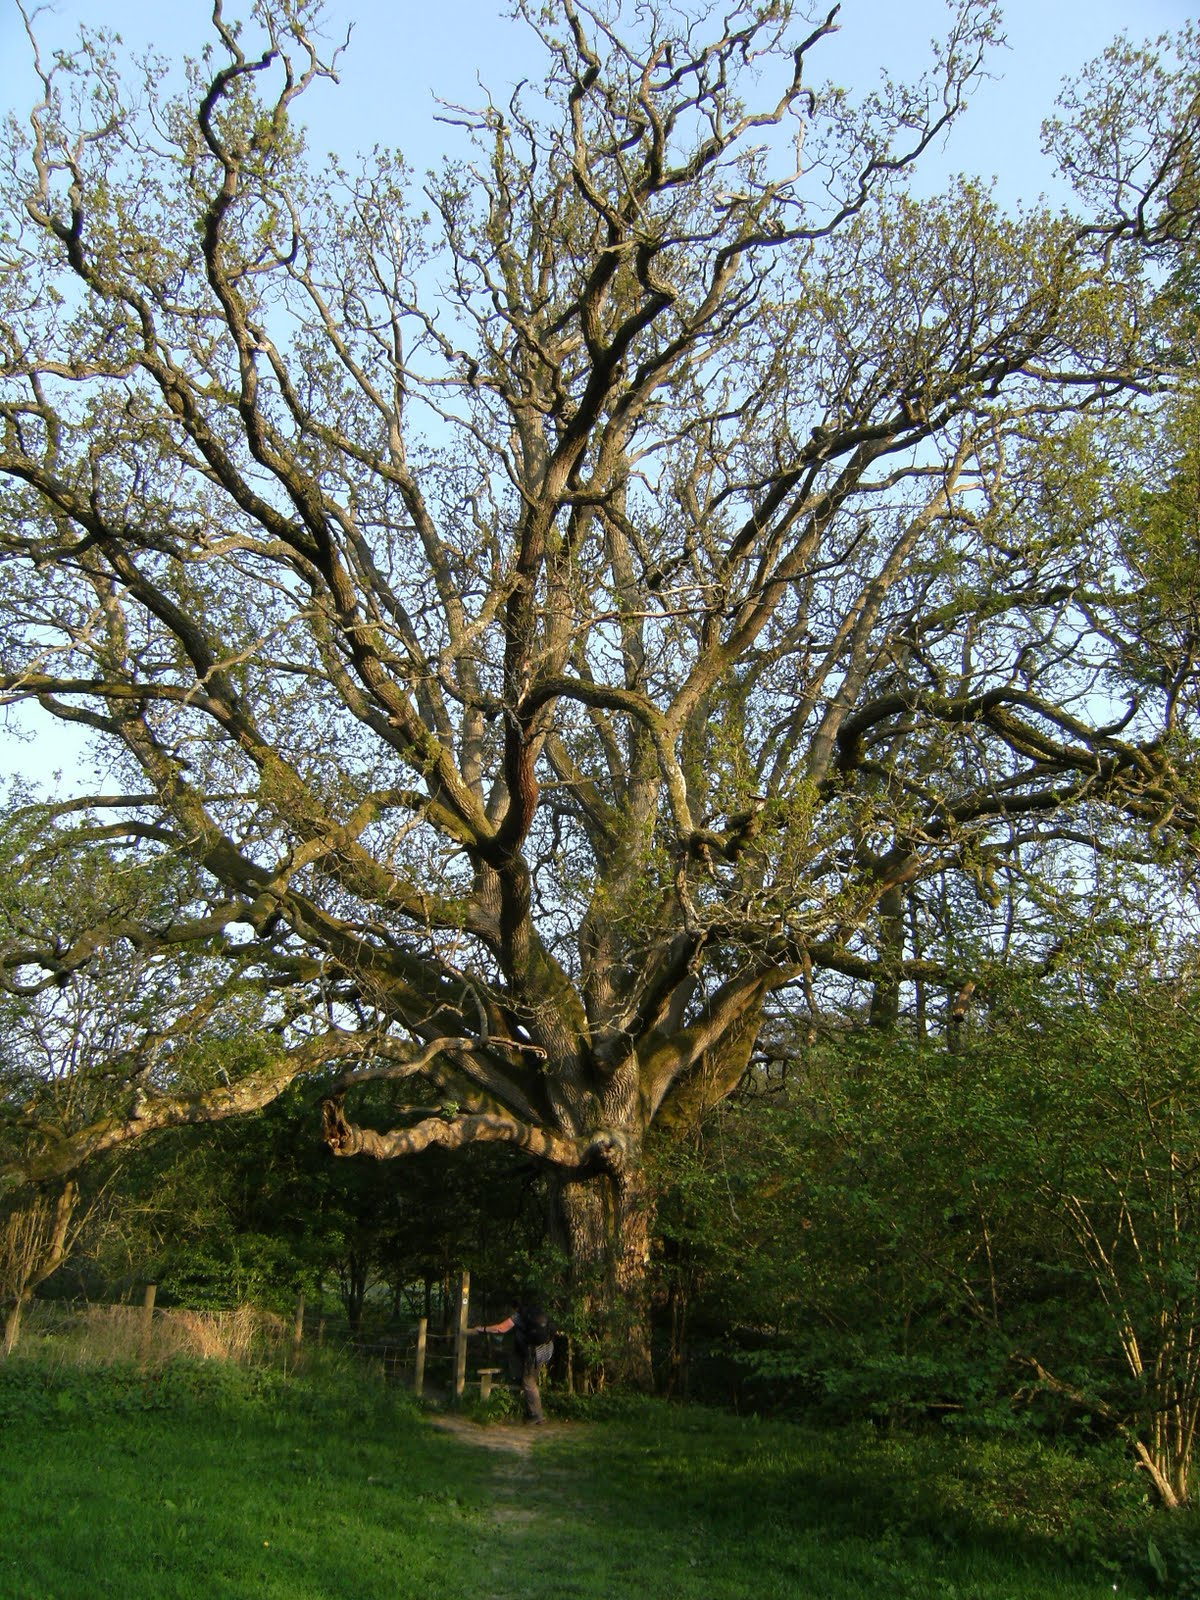 DSCF7506 Old oak tree on the path to High Rocks